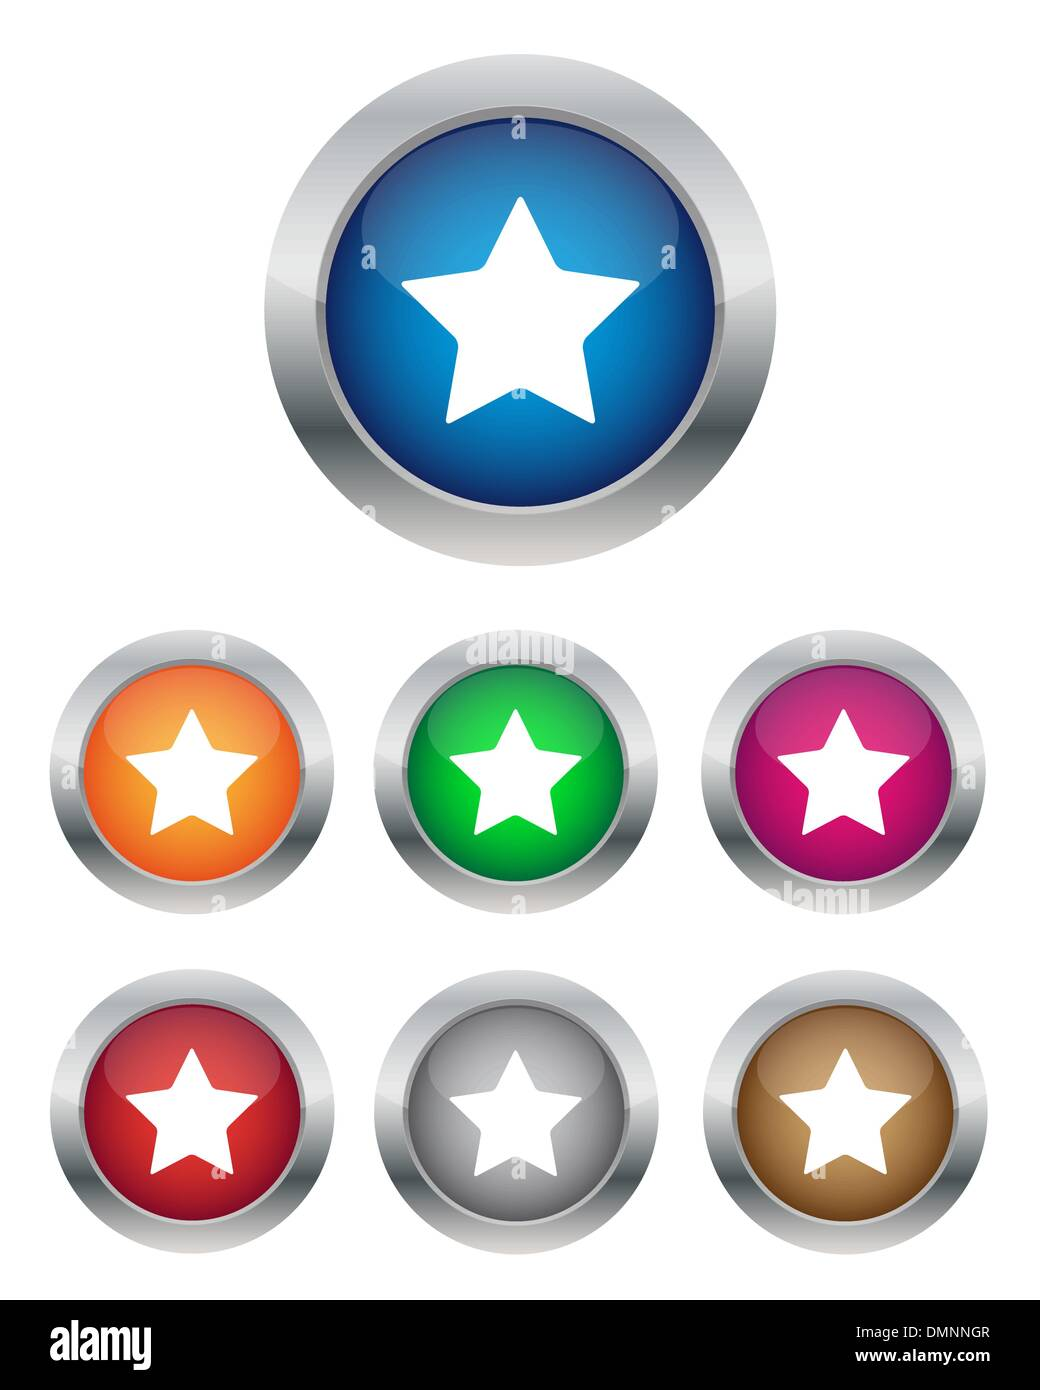 Star buttons - Stock Image